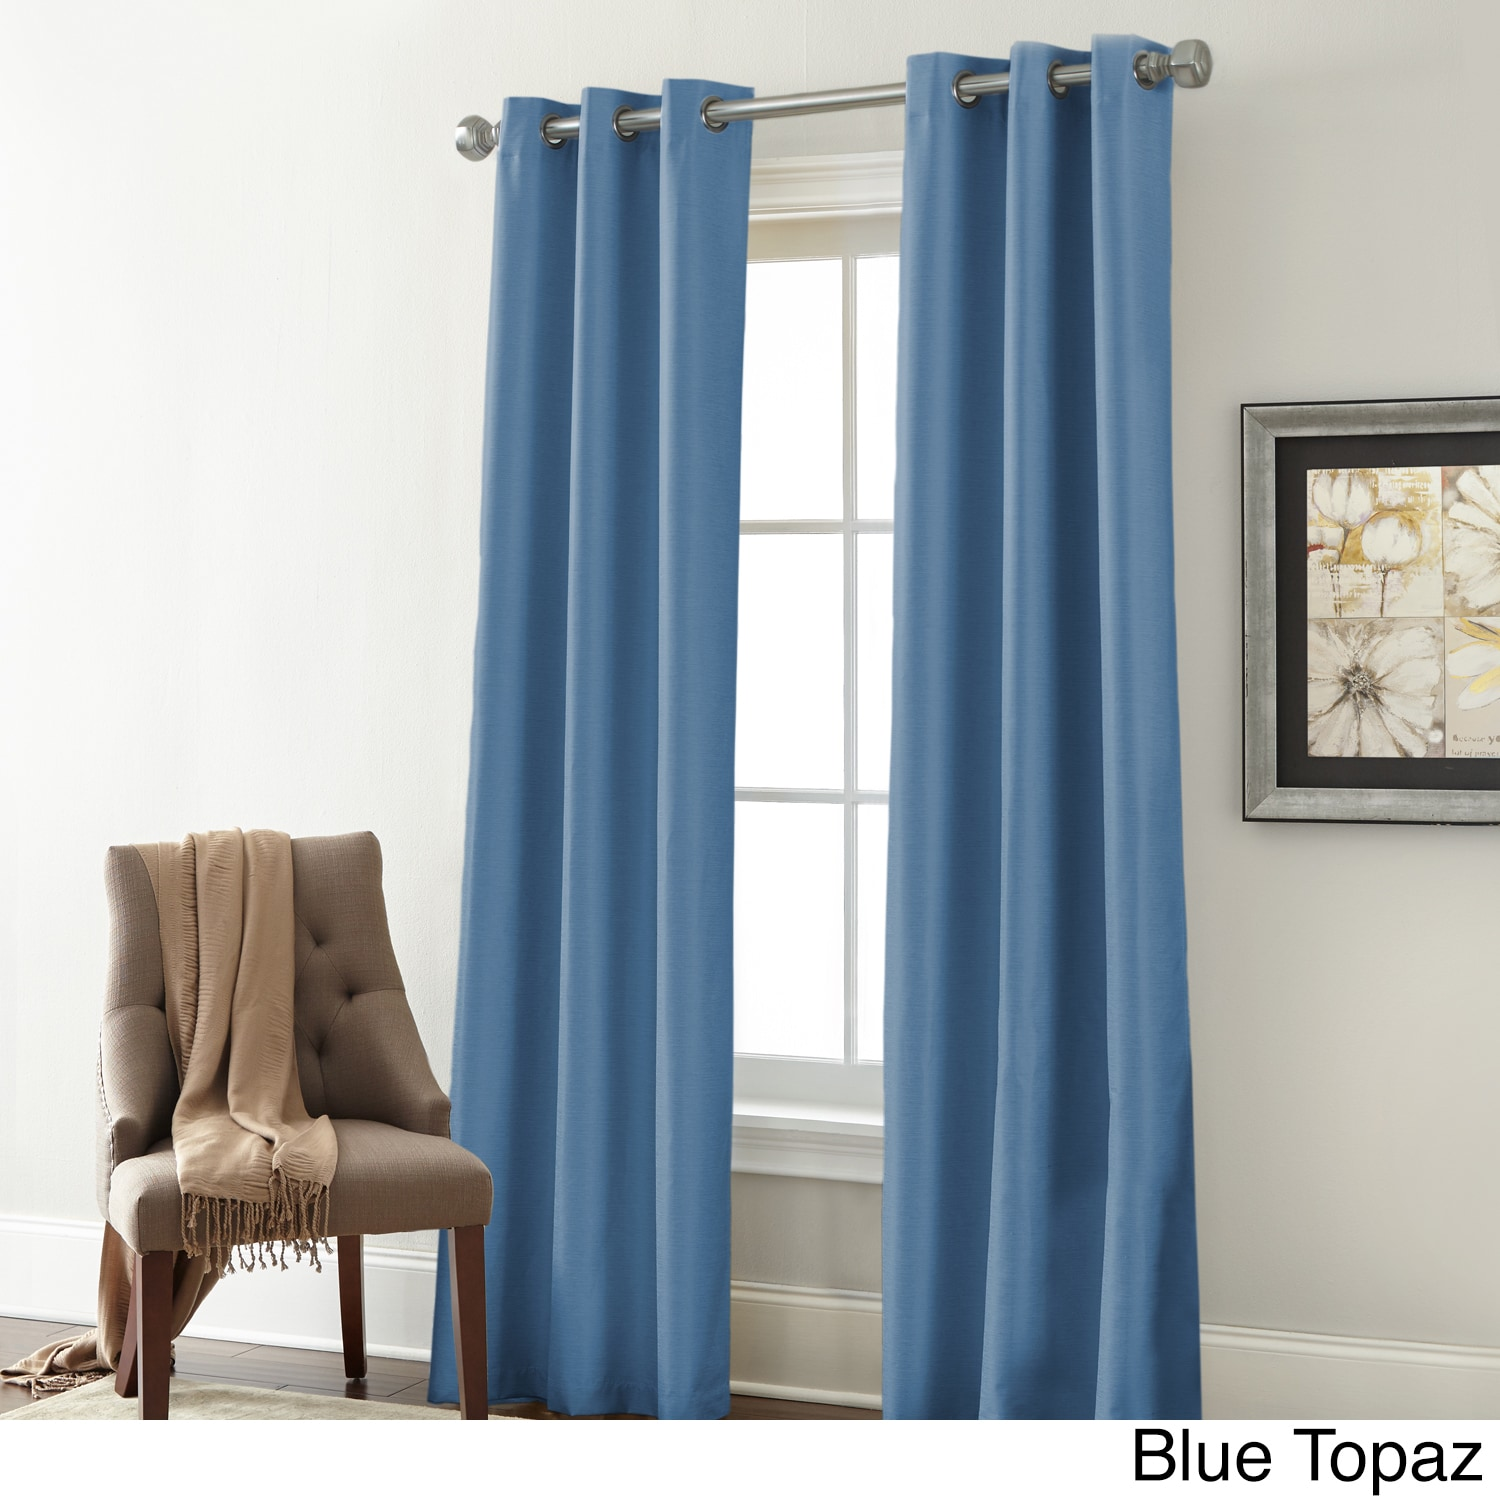 All In One Curtain Set 22 Latest Curtain Designs Patterns